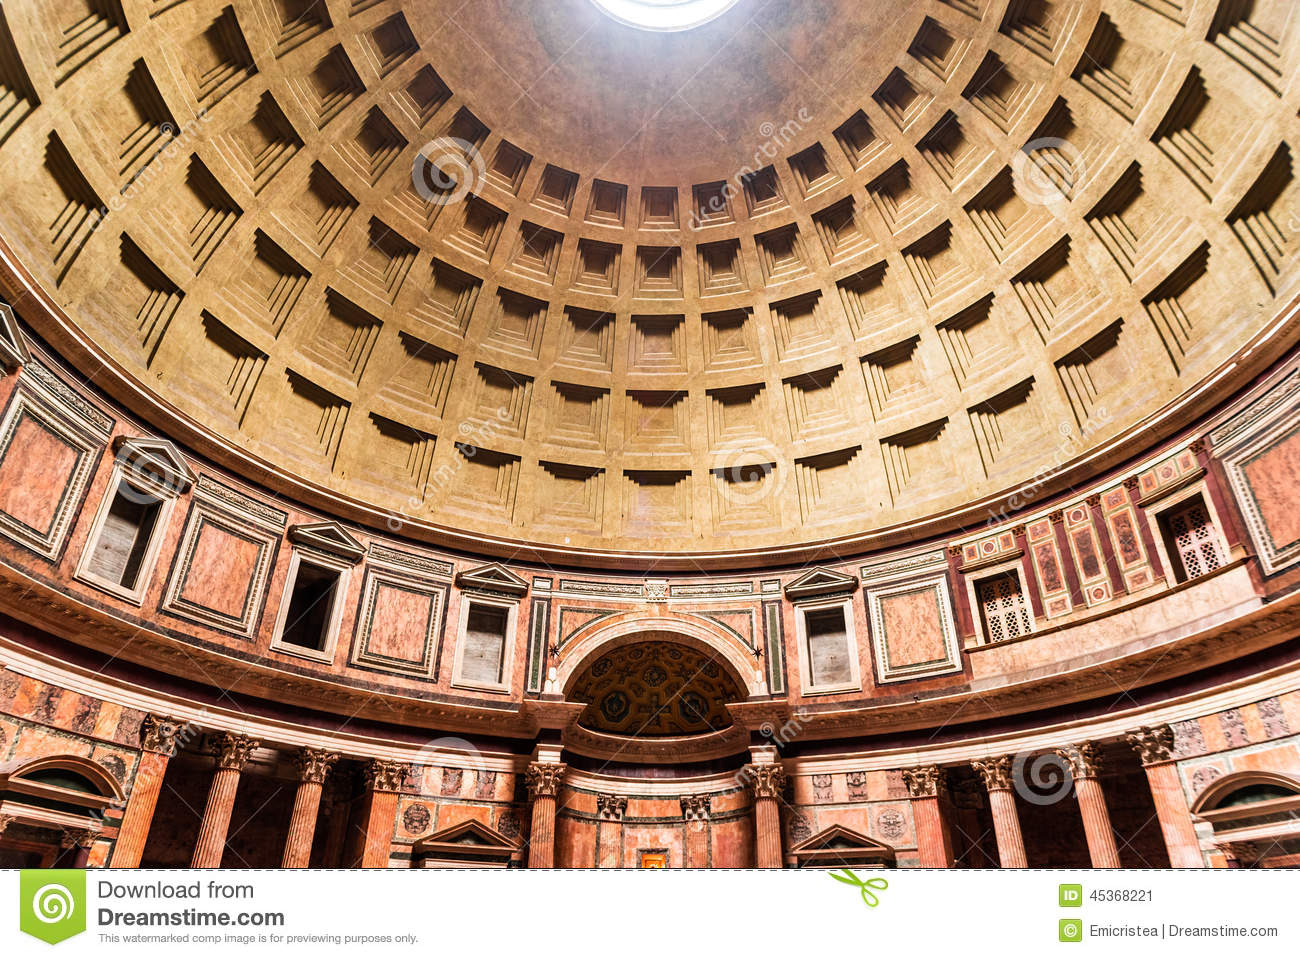 the pantheon the largest un reinforced concrete dome in the world from the roman empire era We find out the history of concrete  symbols of the roman empire—and more literally  ad, the pantheon has the largest un-reinforced concrete dome.